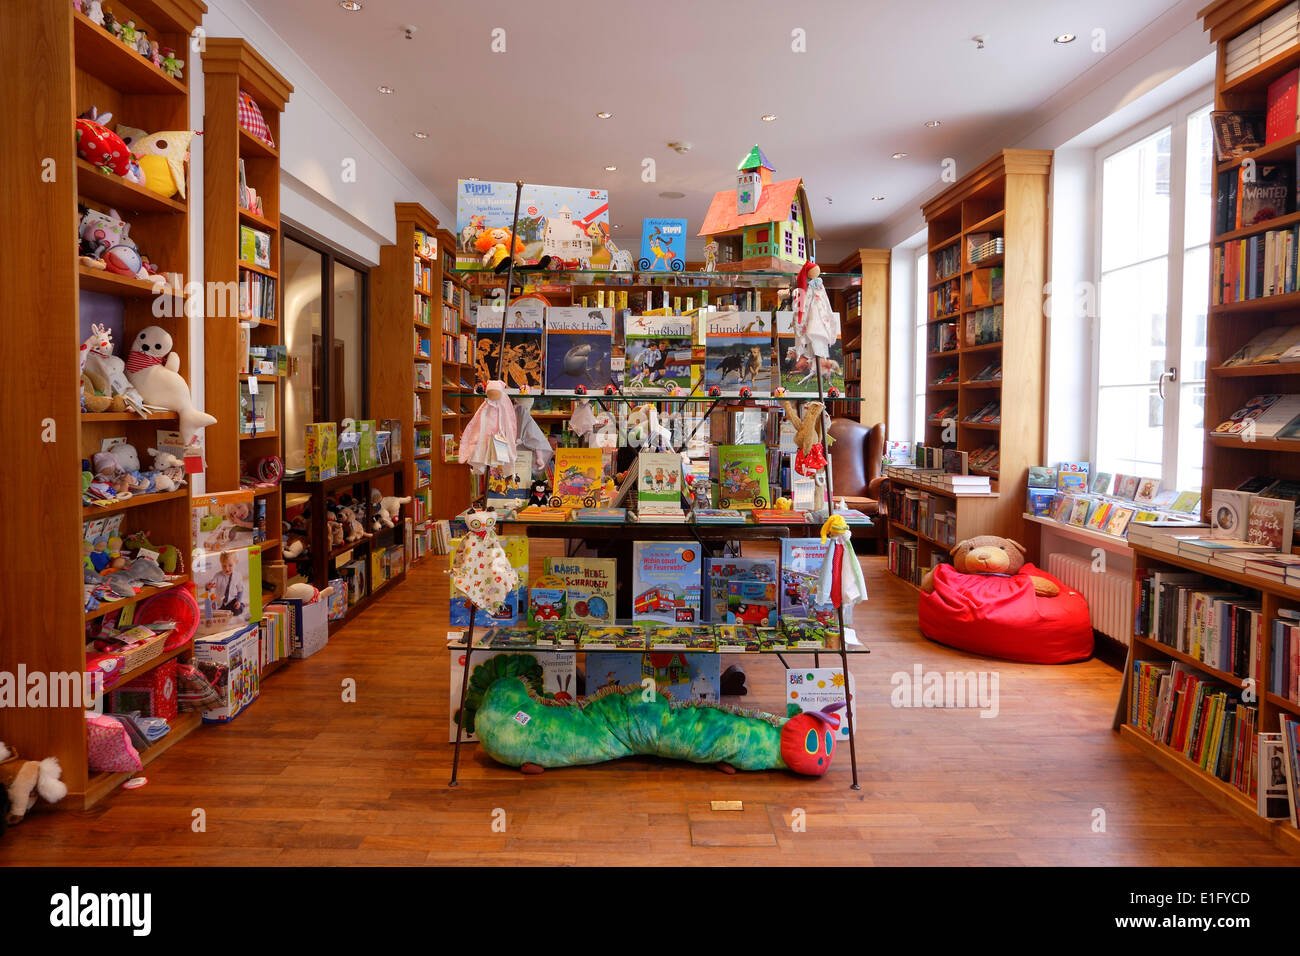 The interior of the foyer in Elmau castle near Kruen with the book store of the hotel - 5 May 2014 Stock Photo